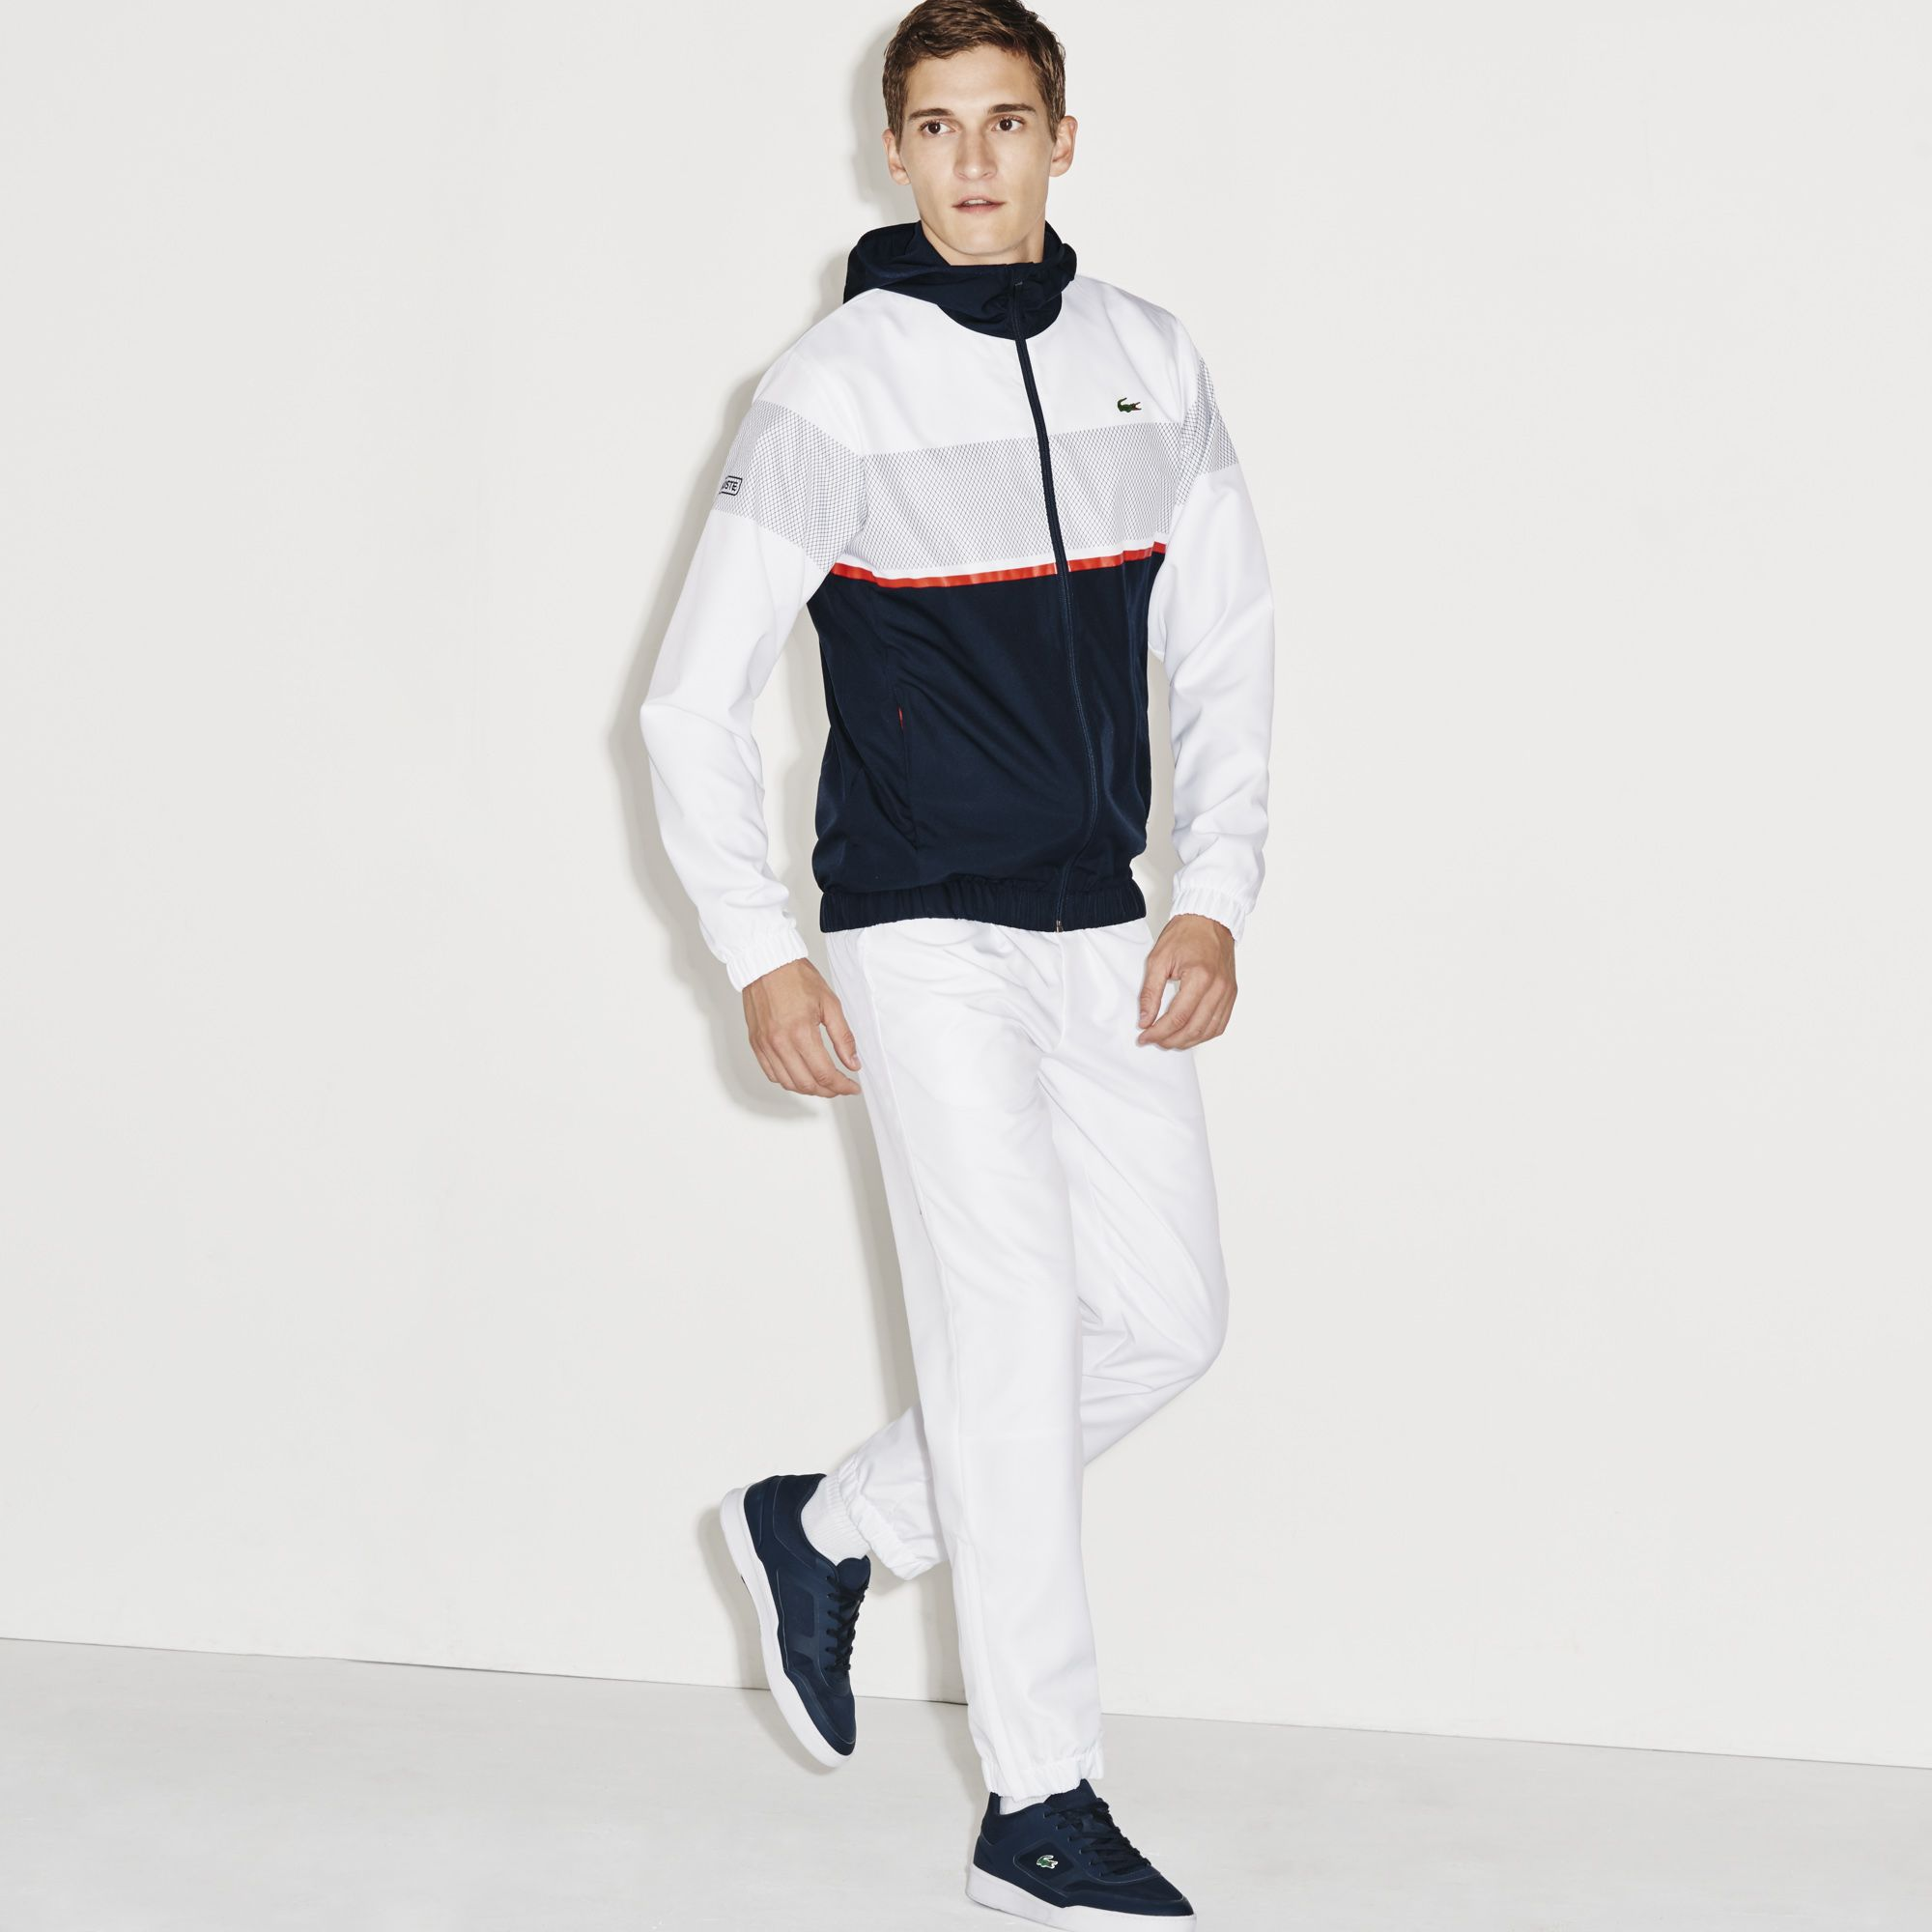 Shiny Taffeta Colorblocks Take On A Net Print For The Design Of This Tracksuit Because Somet Survetement Lacoste Homme Survetement Lacoste Vetements De Tennis